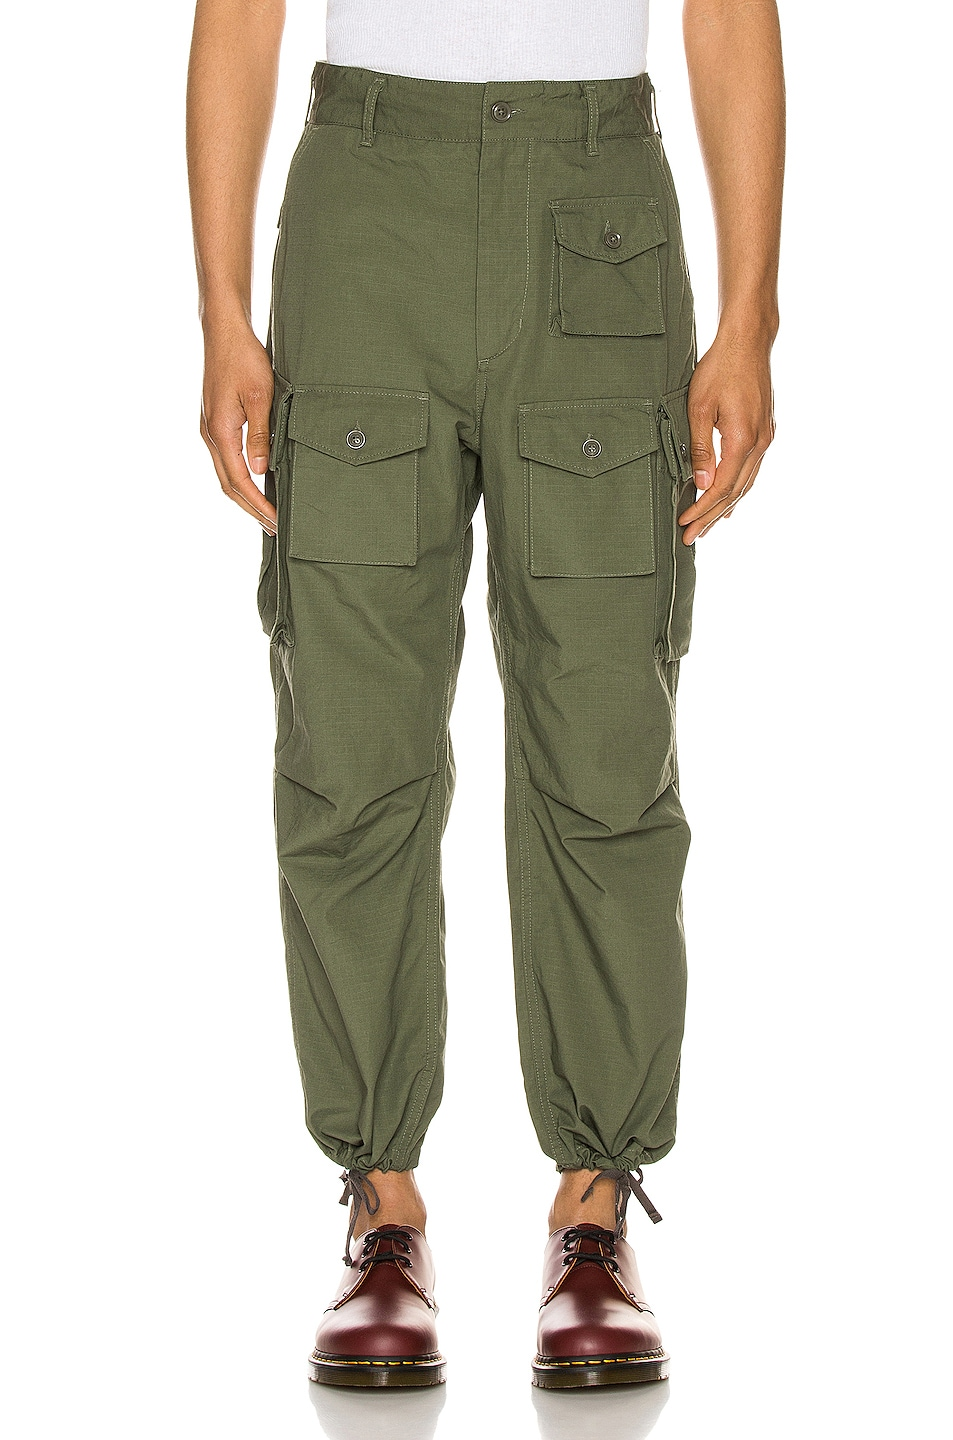 Image 2 of Engineered Garments FA Pant in Olive Cotton Ripstop